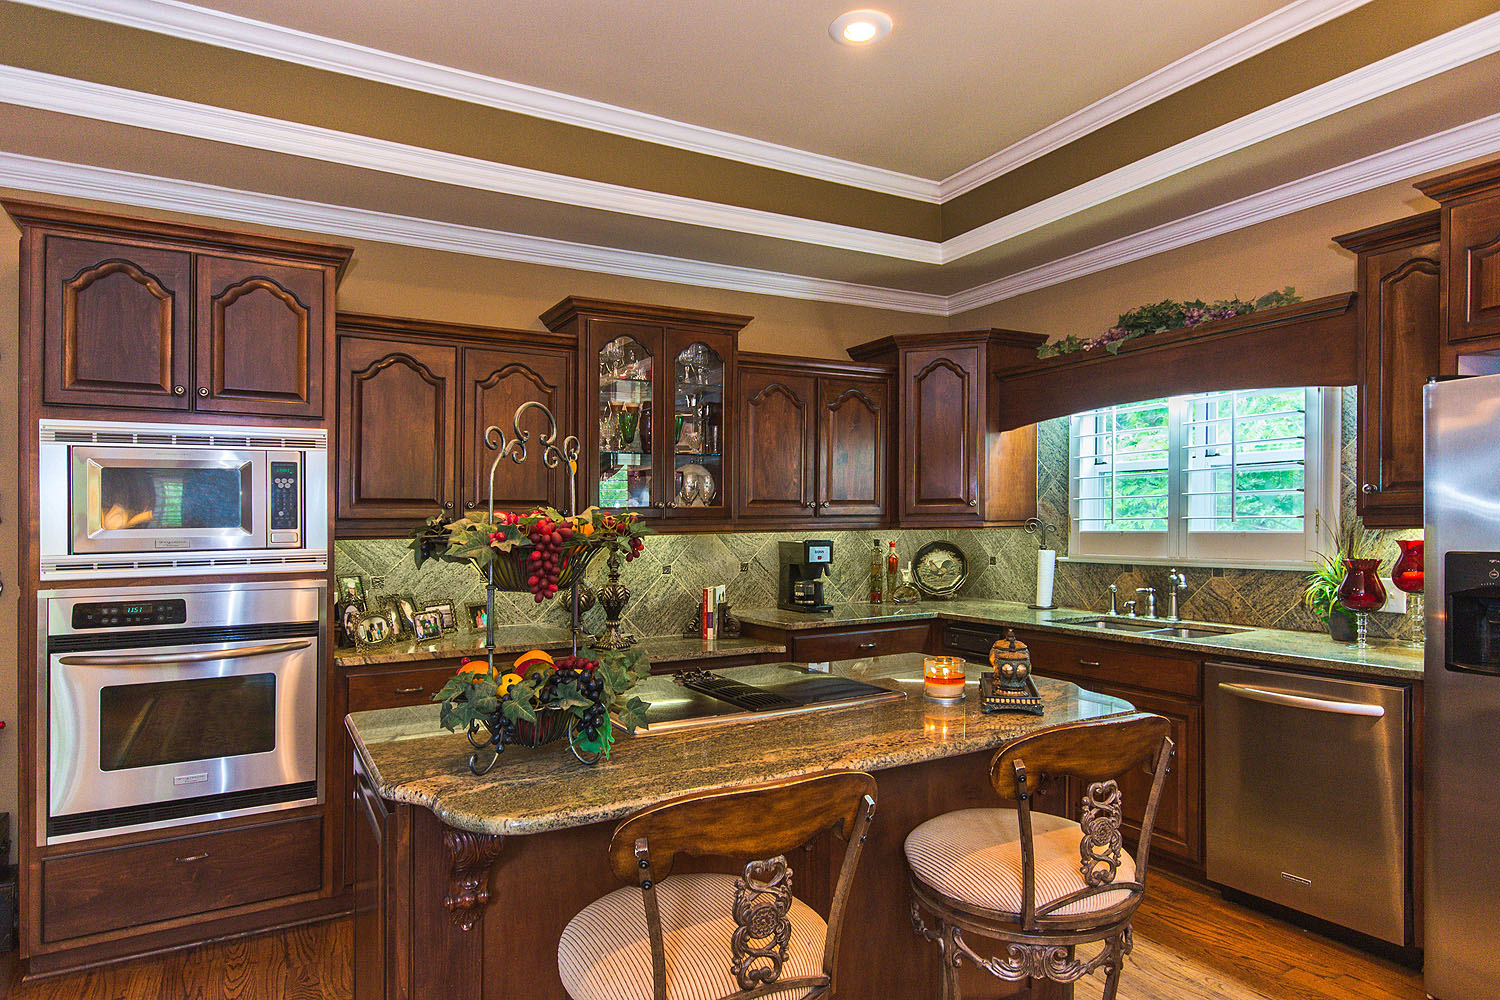 granite top kitchen island large sink dimensions lake jordan al waterfront home for sale-1665 minnie knight ...